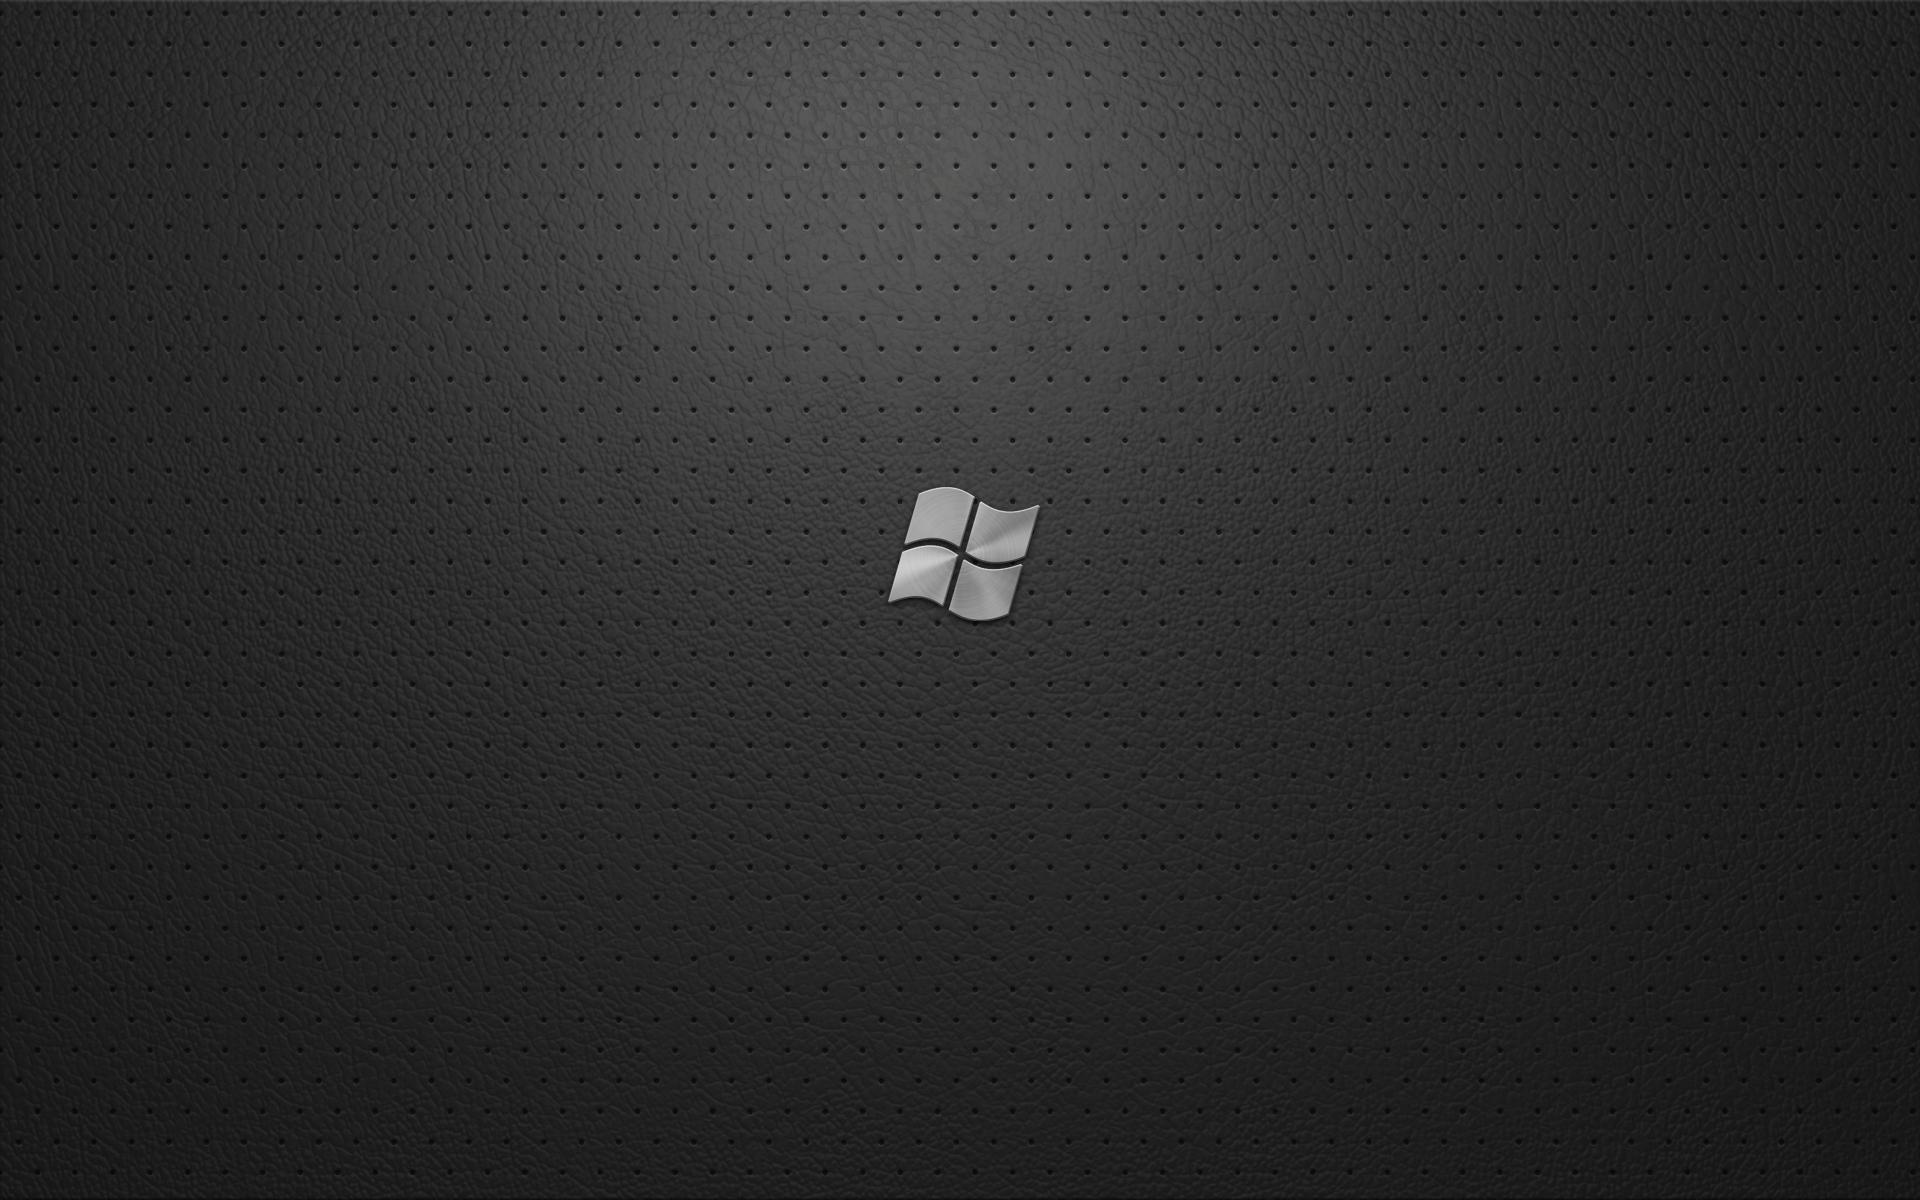 Windows 7 black wallpapers wallpaper cave for High quality windows